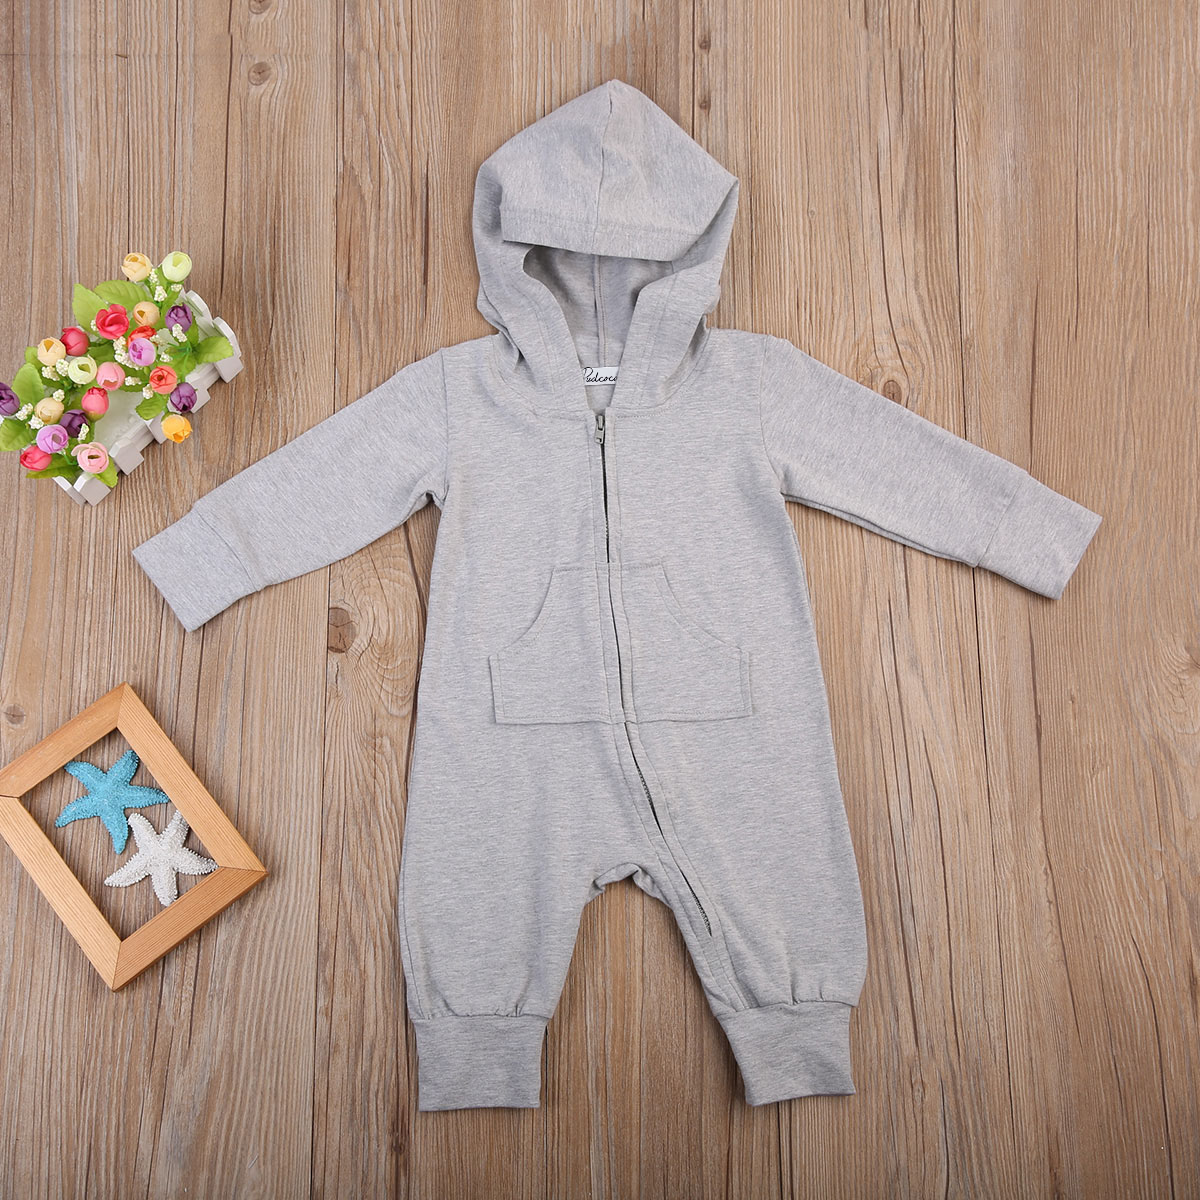 Cartoon-Toddler-Newborn-Baby-Boys-Girls-Romper-Long-Sleeve-Gray-Hooded-Jumpsuit-Zipper-Outfits-Clothes-3